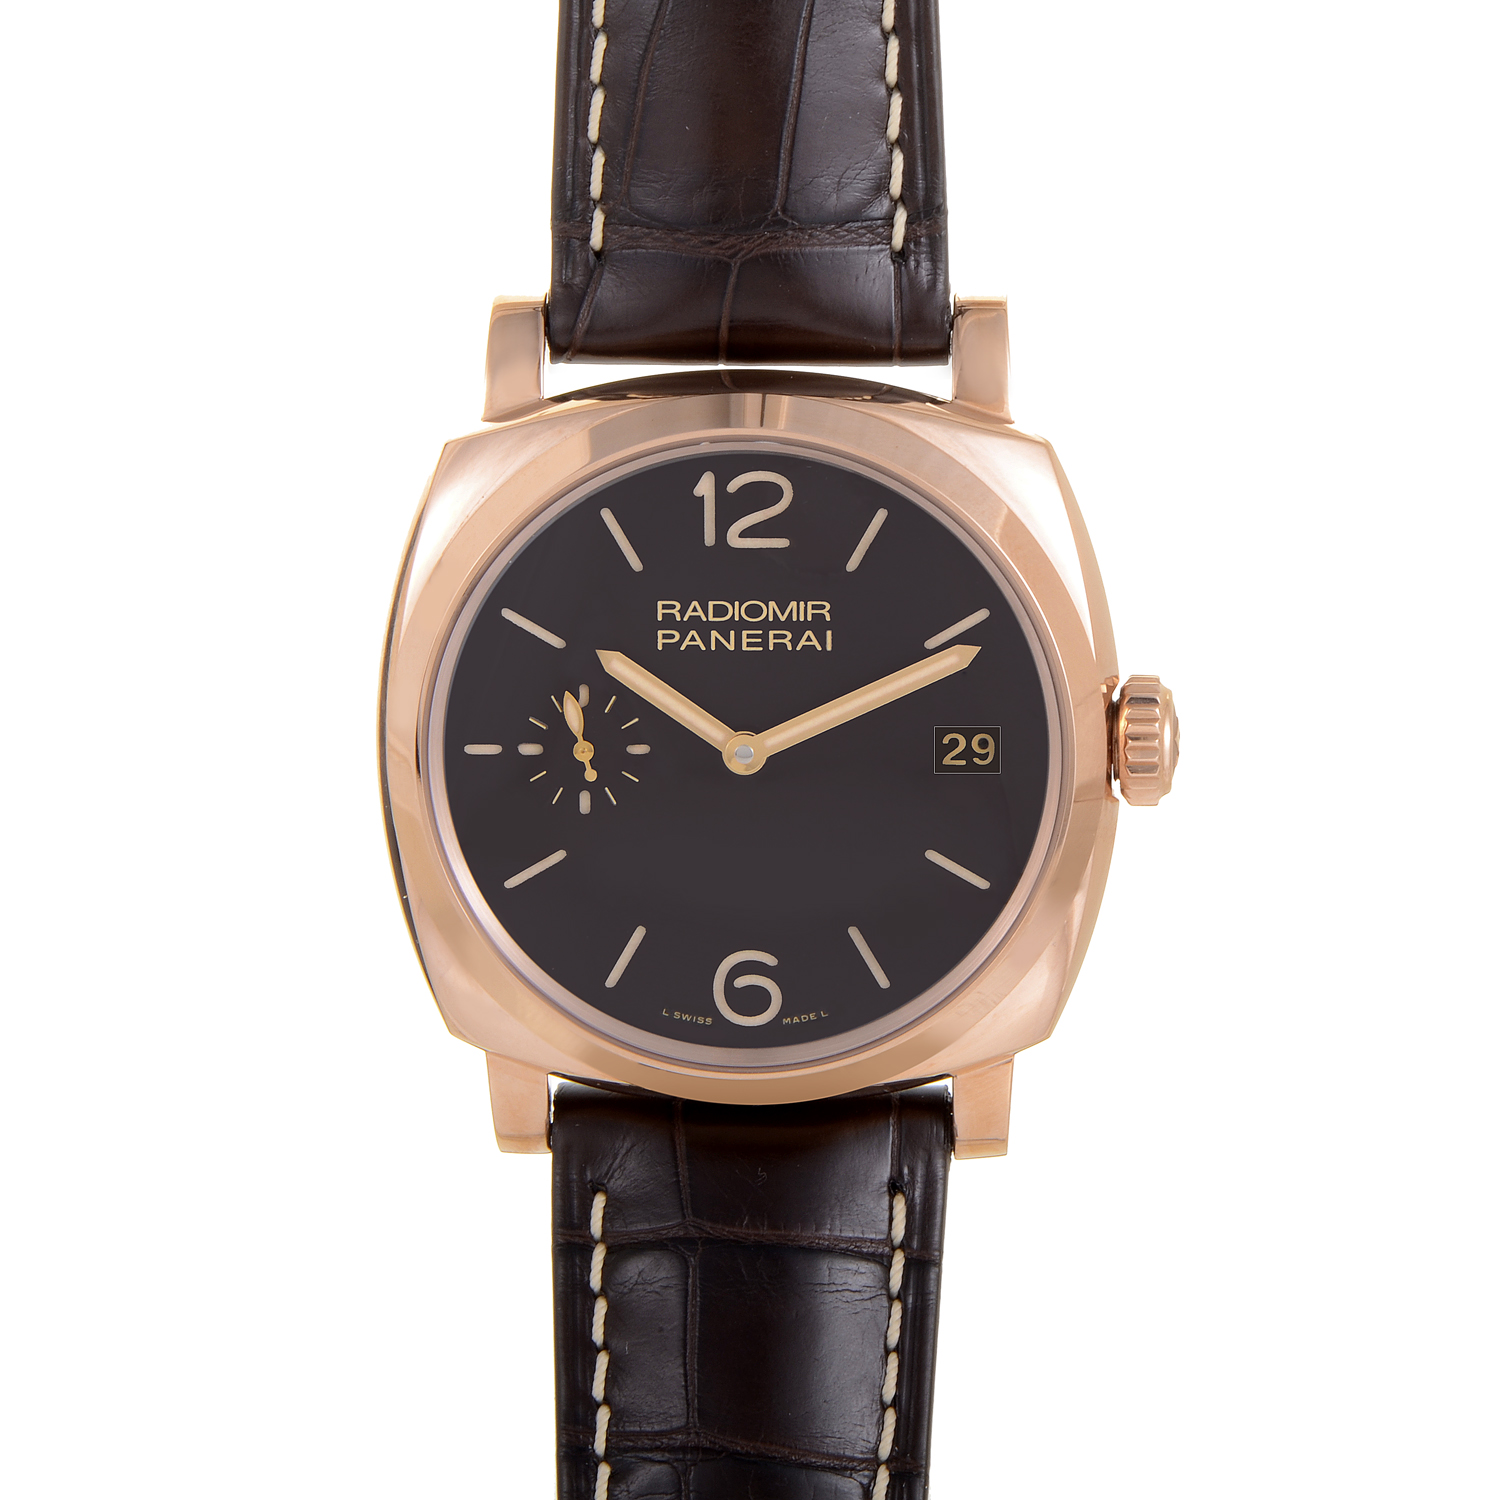 Radiomir 1940 3 Days Oro Rosso Men's Watch PAM00515